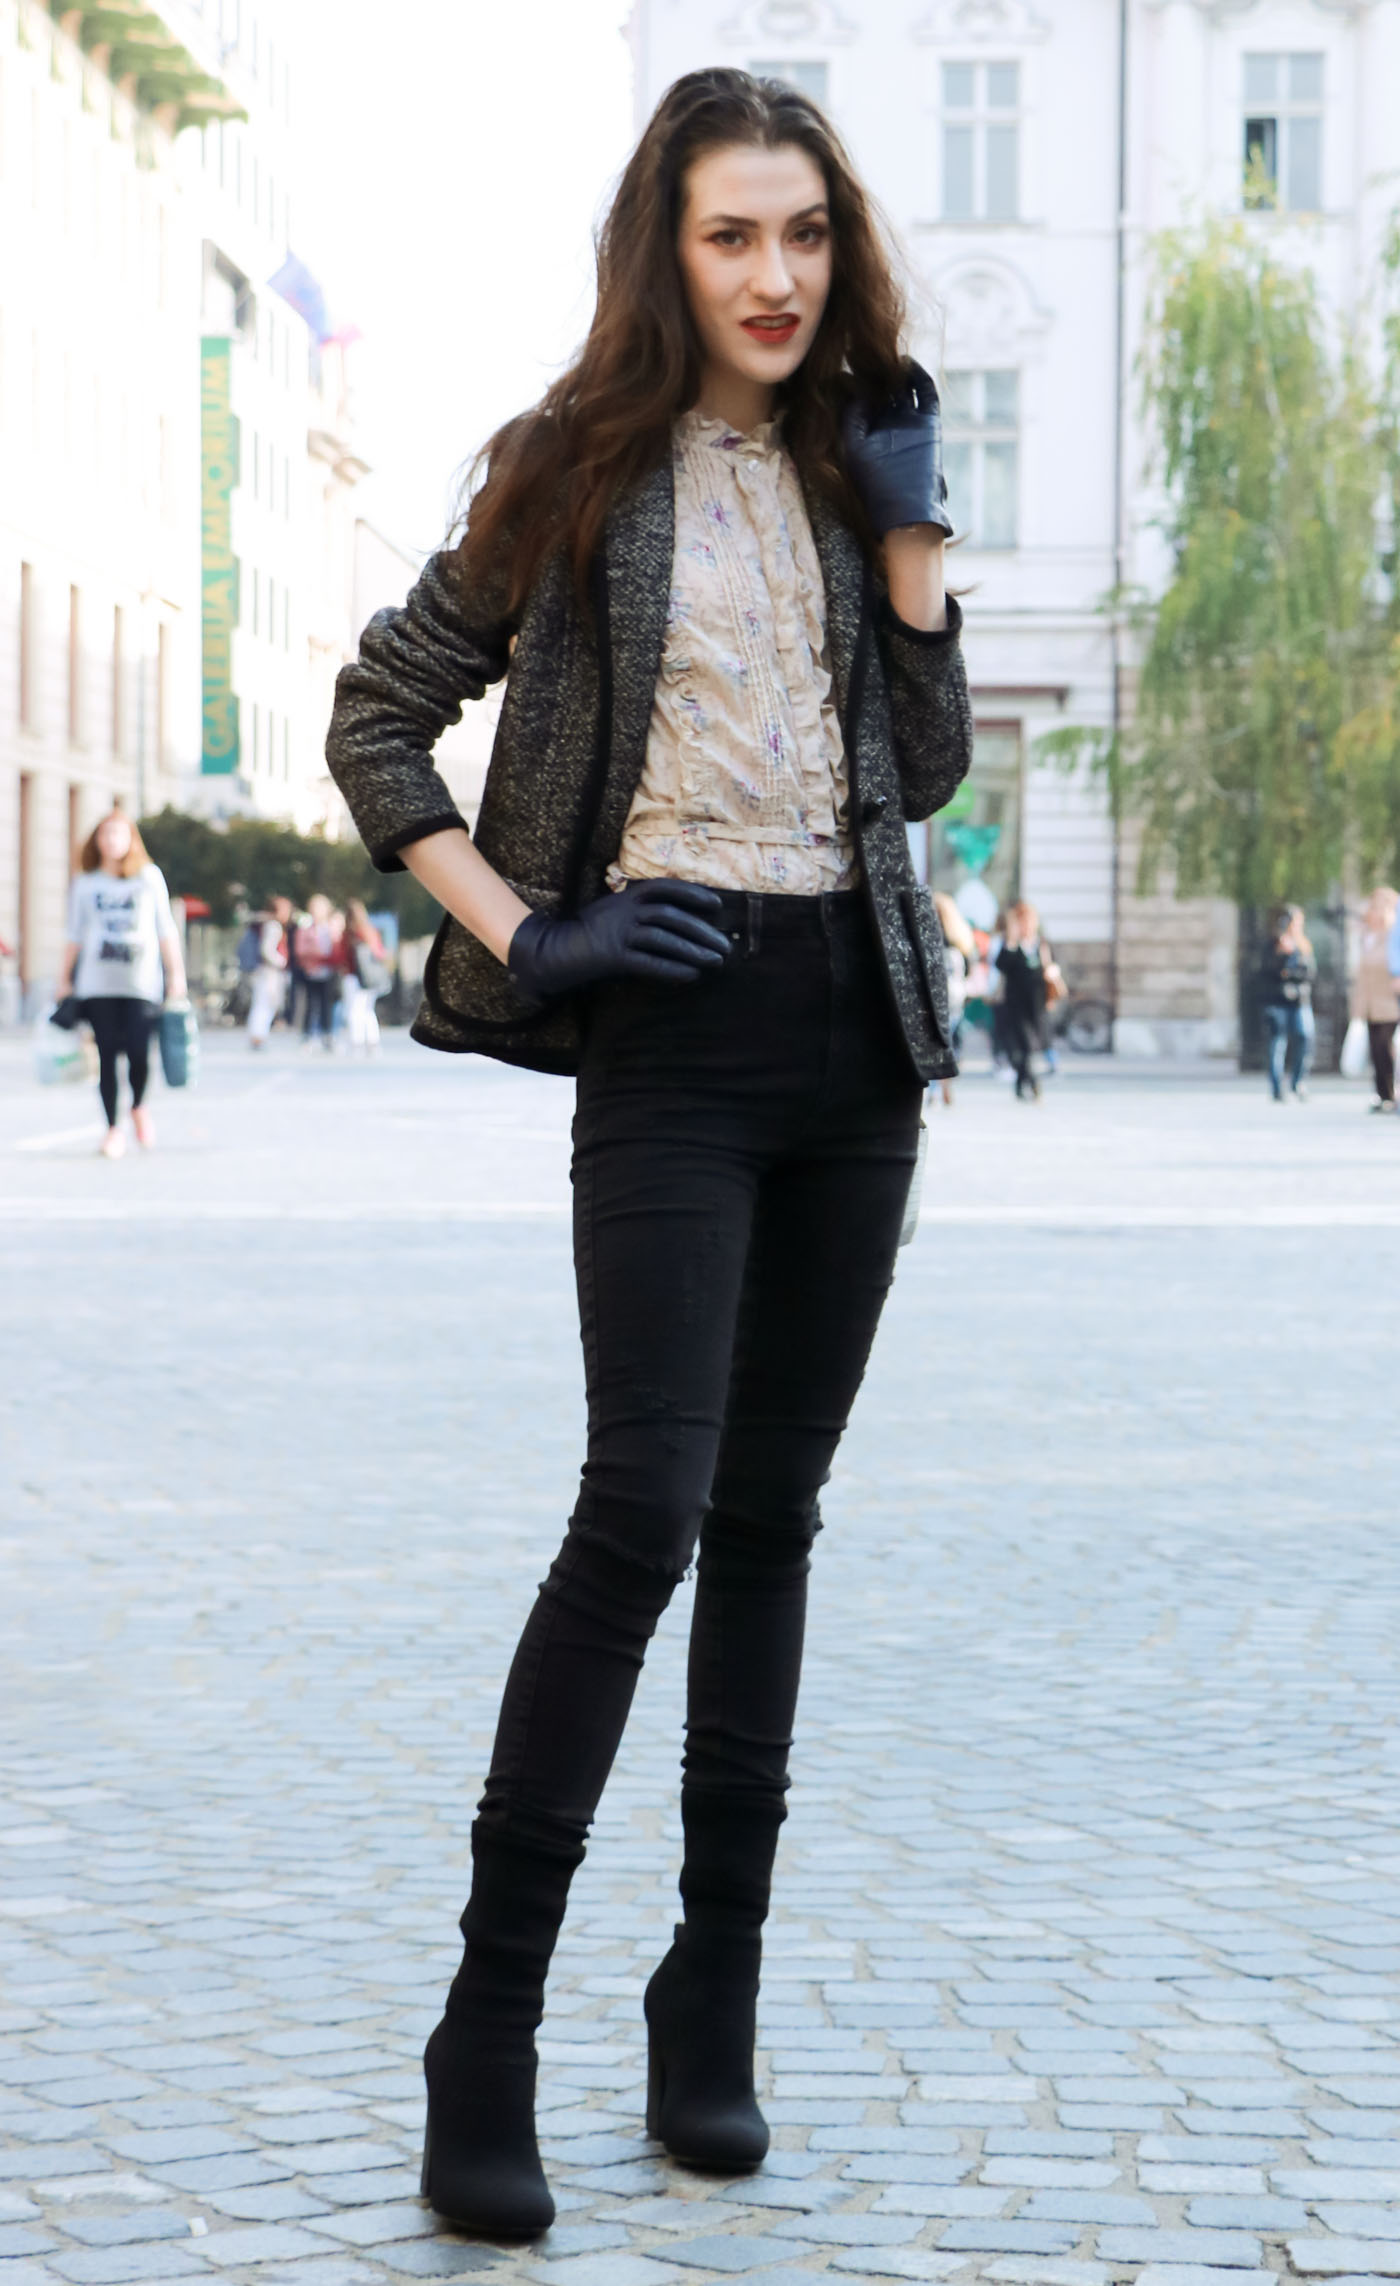 Fashion Blogger Veronika Lipar of Brunette from Wall wearing black skinny jeans, black sock ankle booties and Victorian blouse under tweed black and white blazer